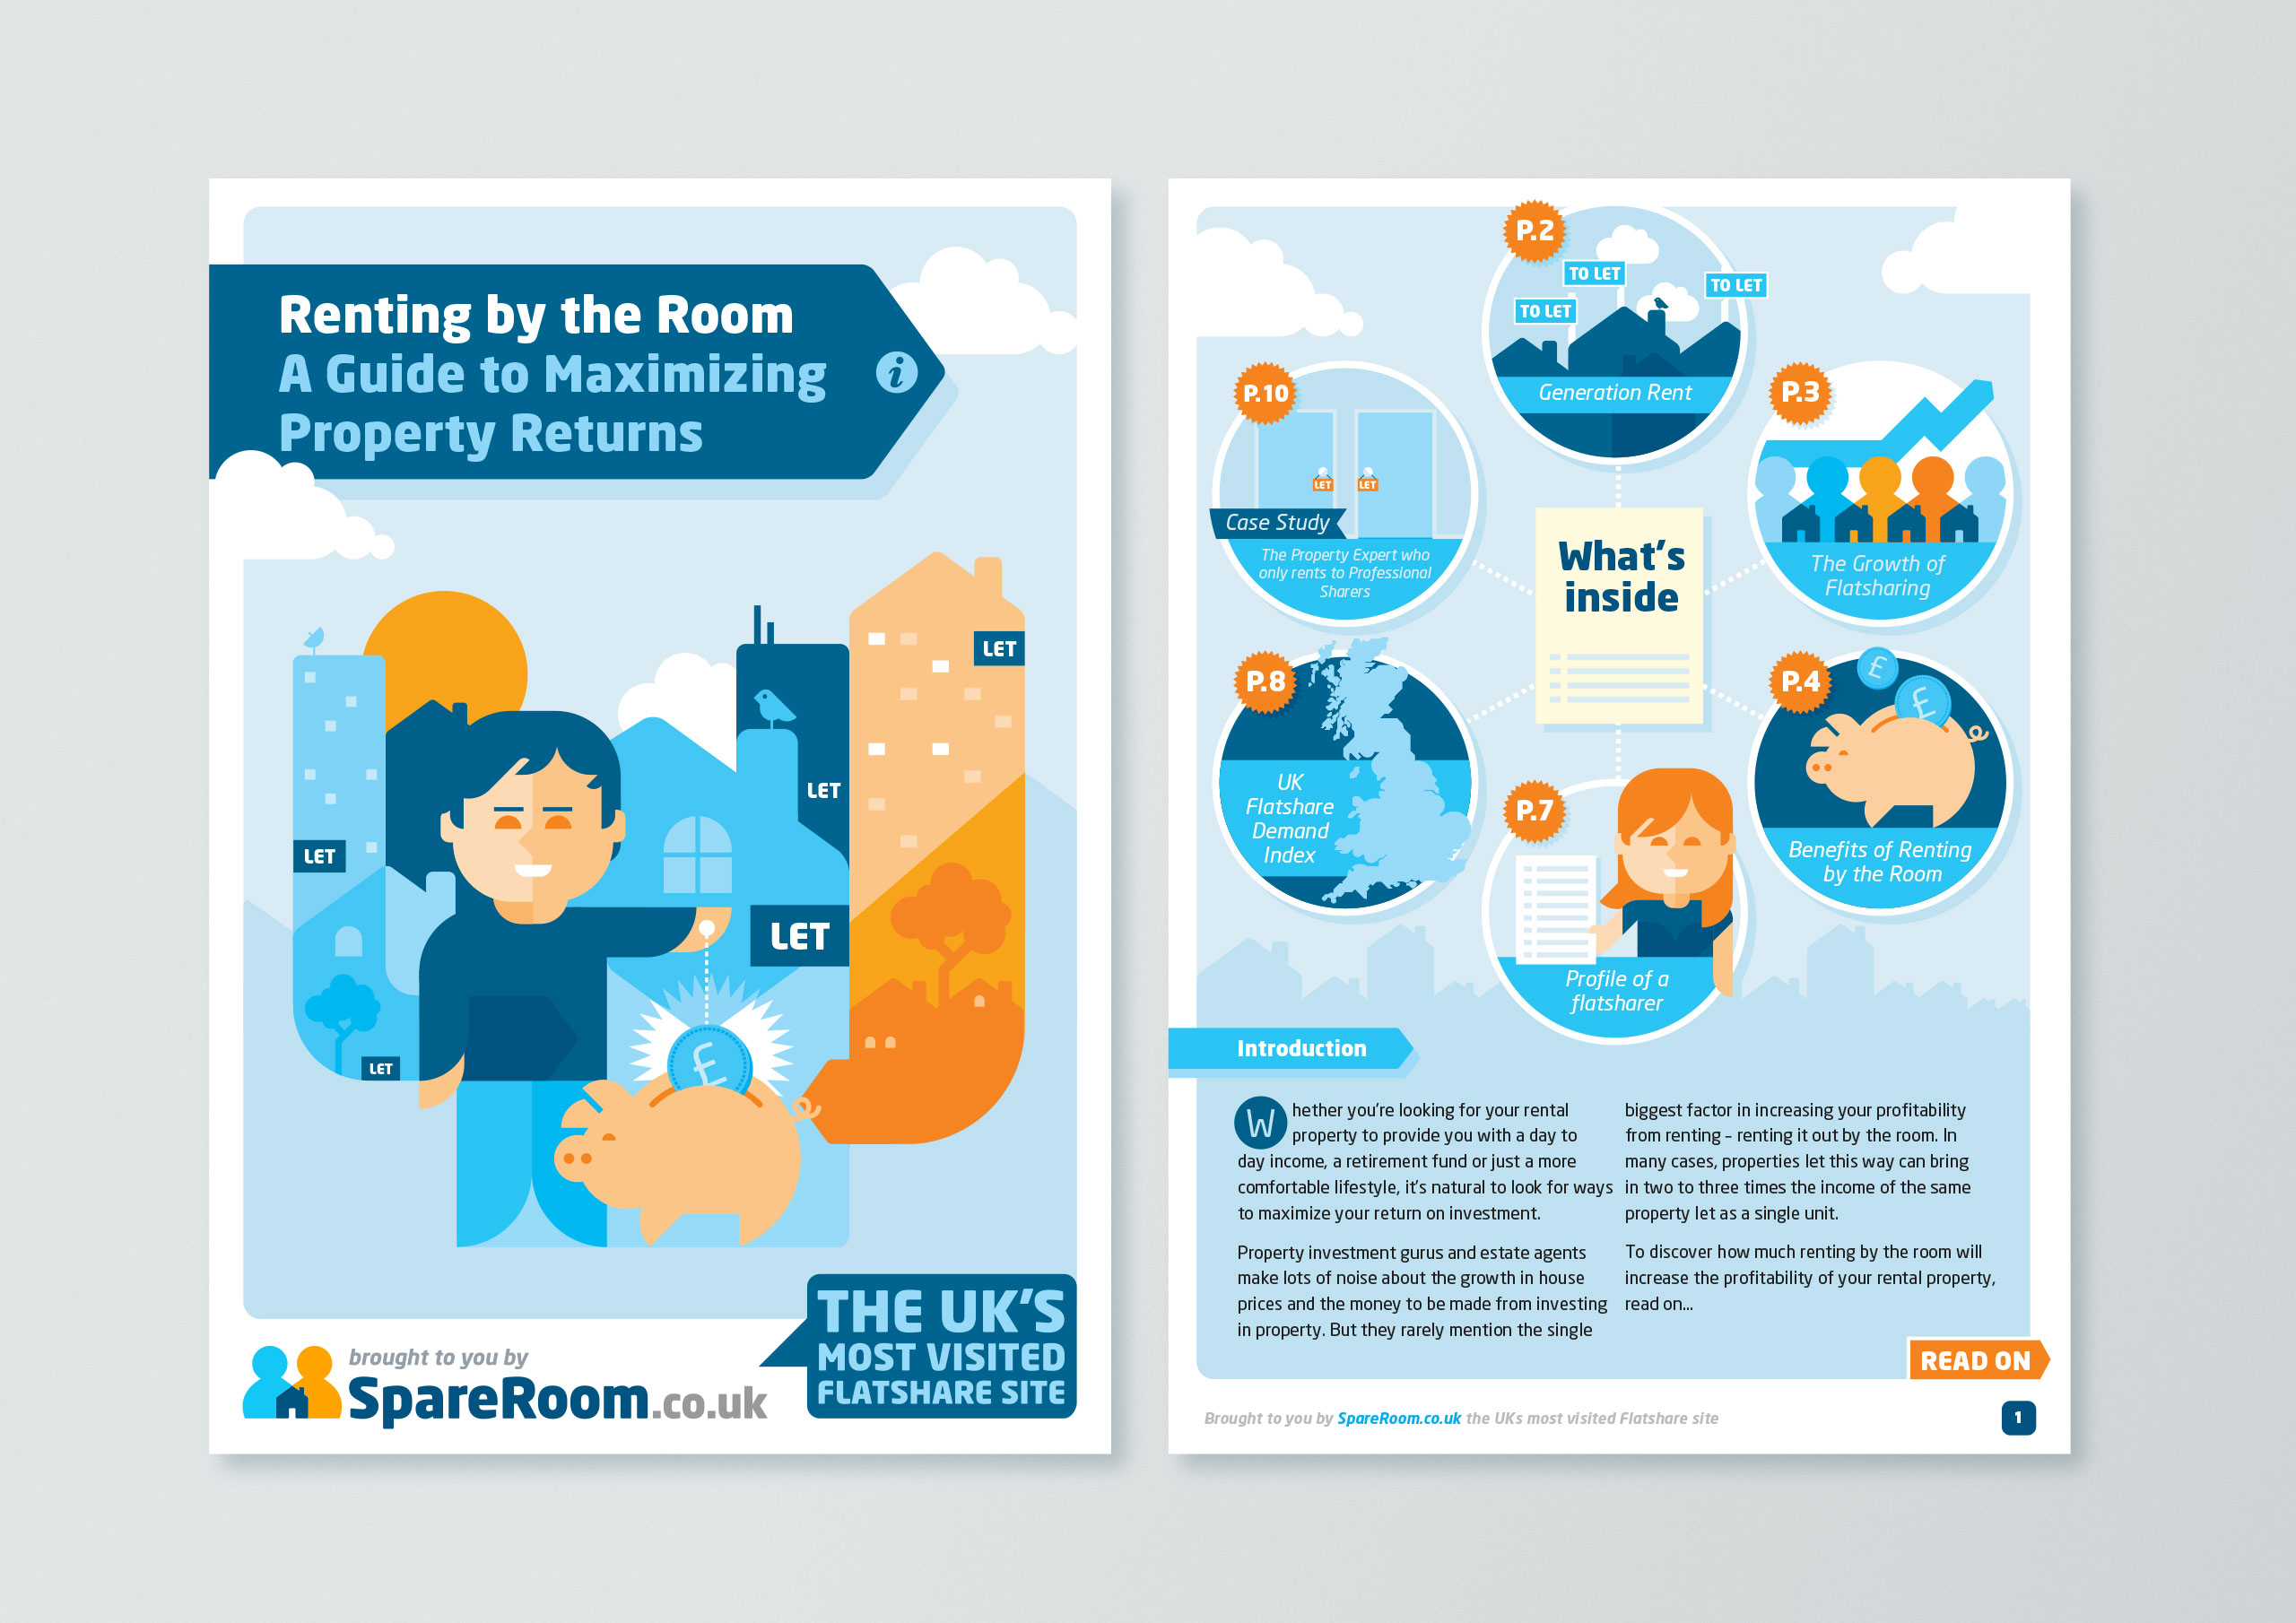 SpareRoom User Guides pages by Dan Forster